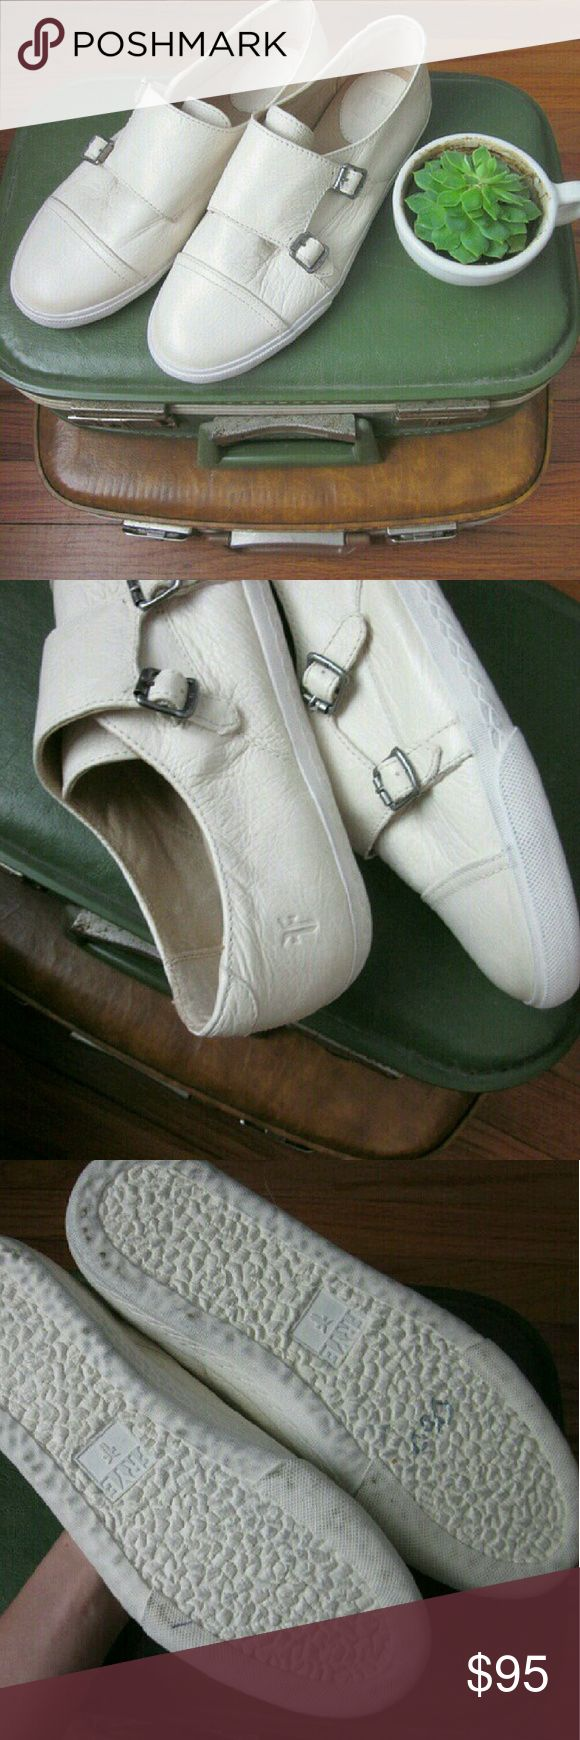 Frye Mindy Monk Strap Sneaker Leather 6 NWOB New without box! Uppers flawless. Perfect super soft antiques leather. Cushioned footbeds. Sold out online - website claims true to size. Round toe cap. Double monk strap buckle closure. Rubber soles look to be worn but are made that way - see stock photo. Color is Off white per nordstrom website. Almost cream. Bundle for best deals! Hundreds of items available for discounted bundles! You can get lots of items for a low price and one shipping fee…